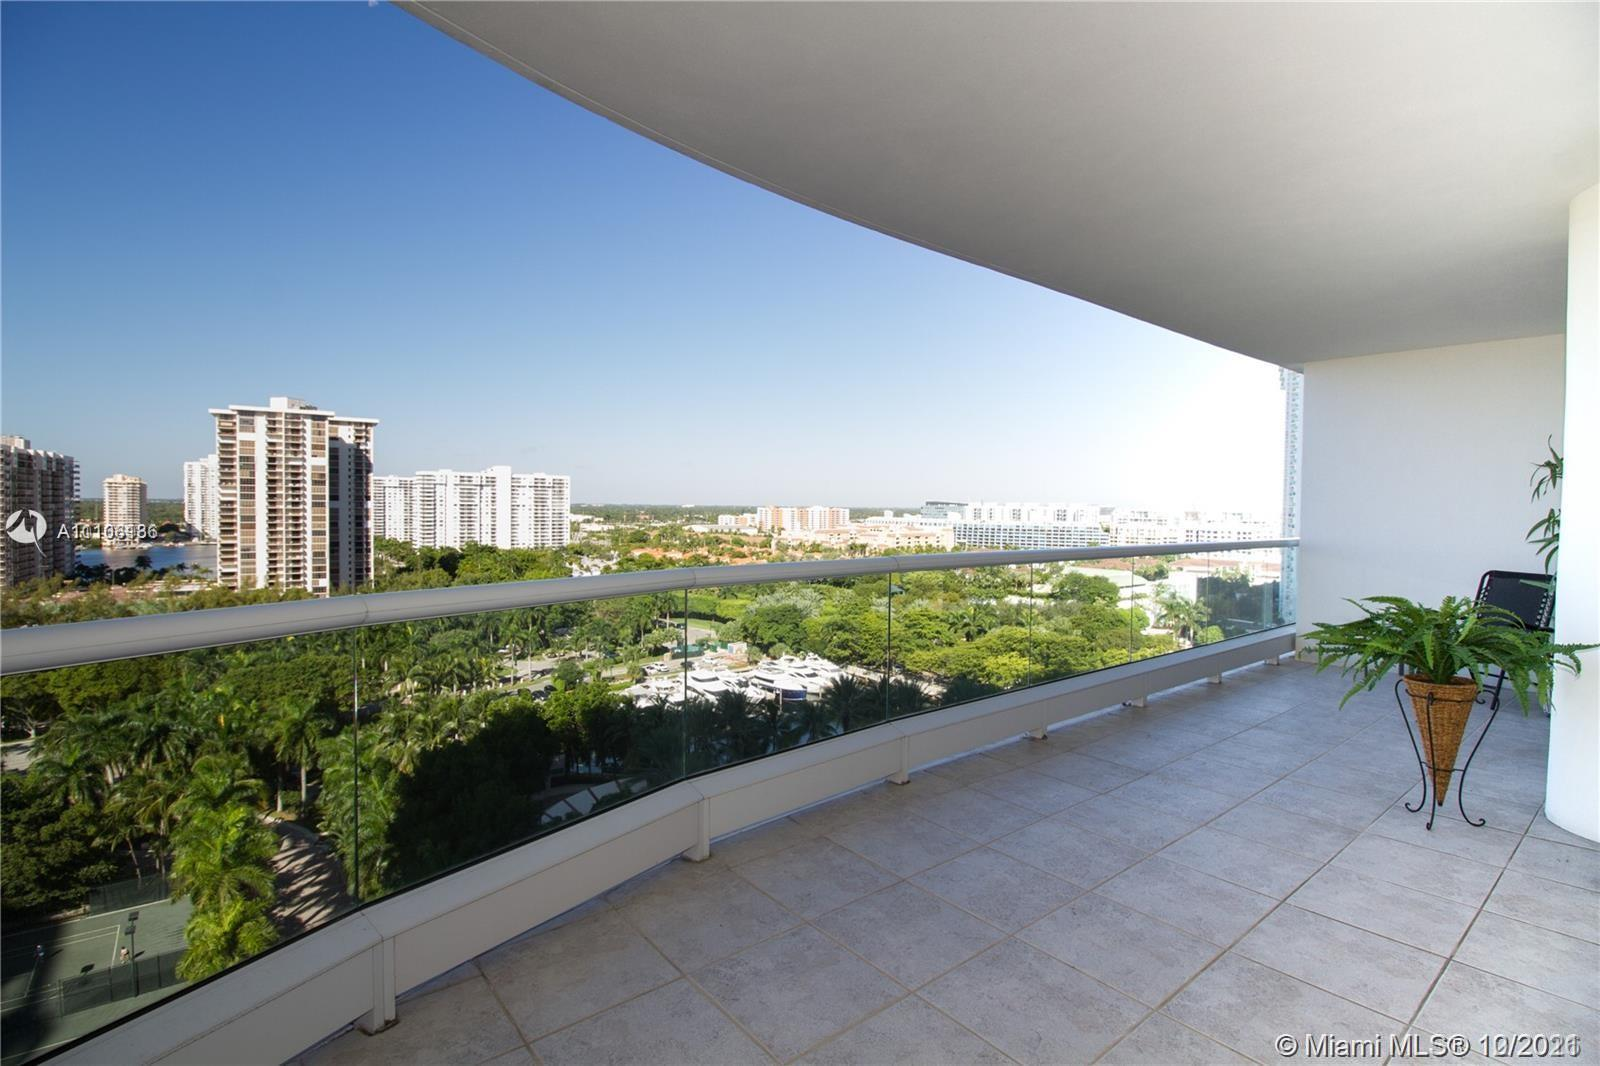 SUNRISE TO SUNSETS BREATHTAKING VIEW OF THE BAY & CITY. THE IMPECCABLE UNIT WITH UNIQUE WOOD FLOORS